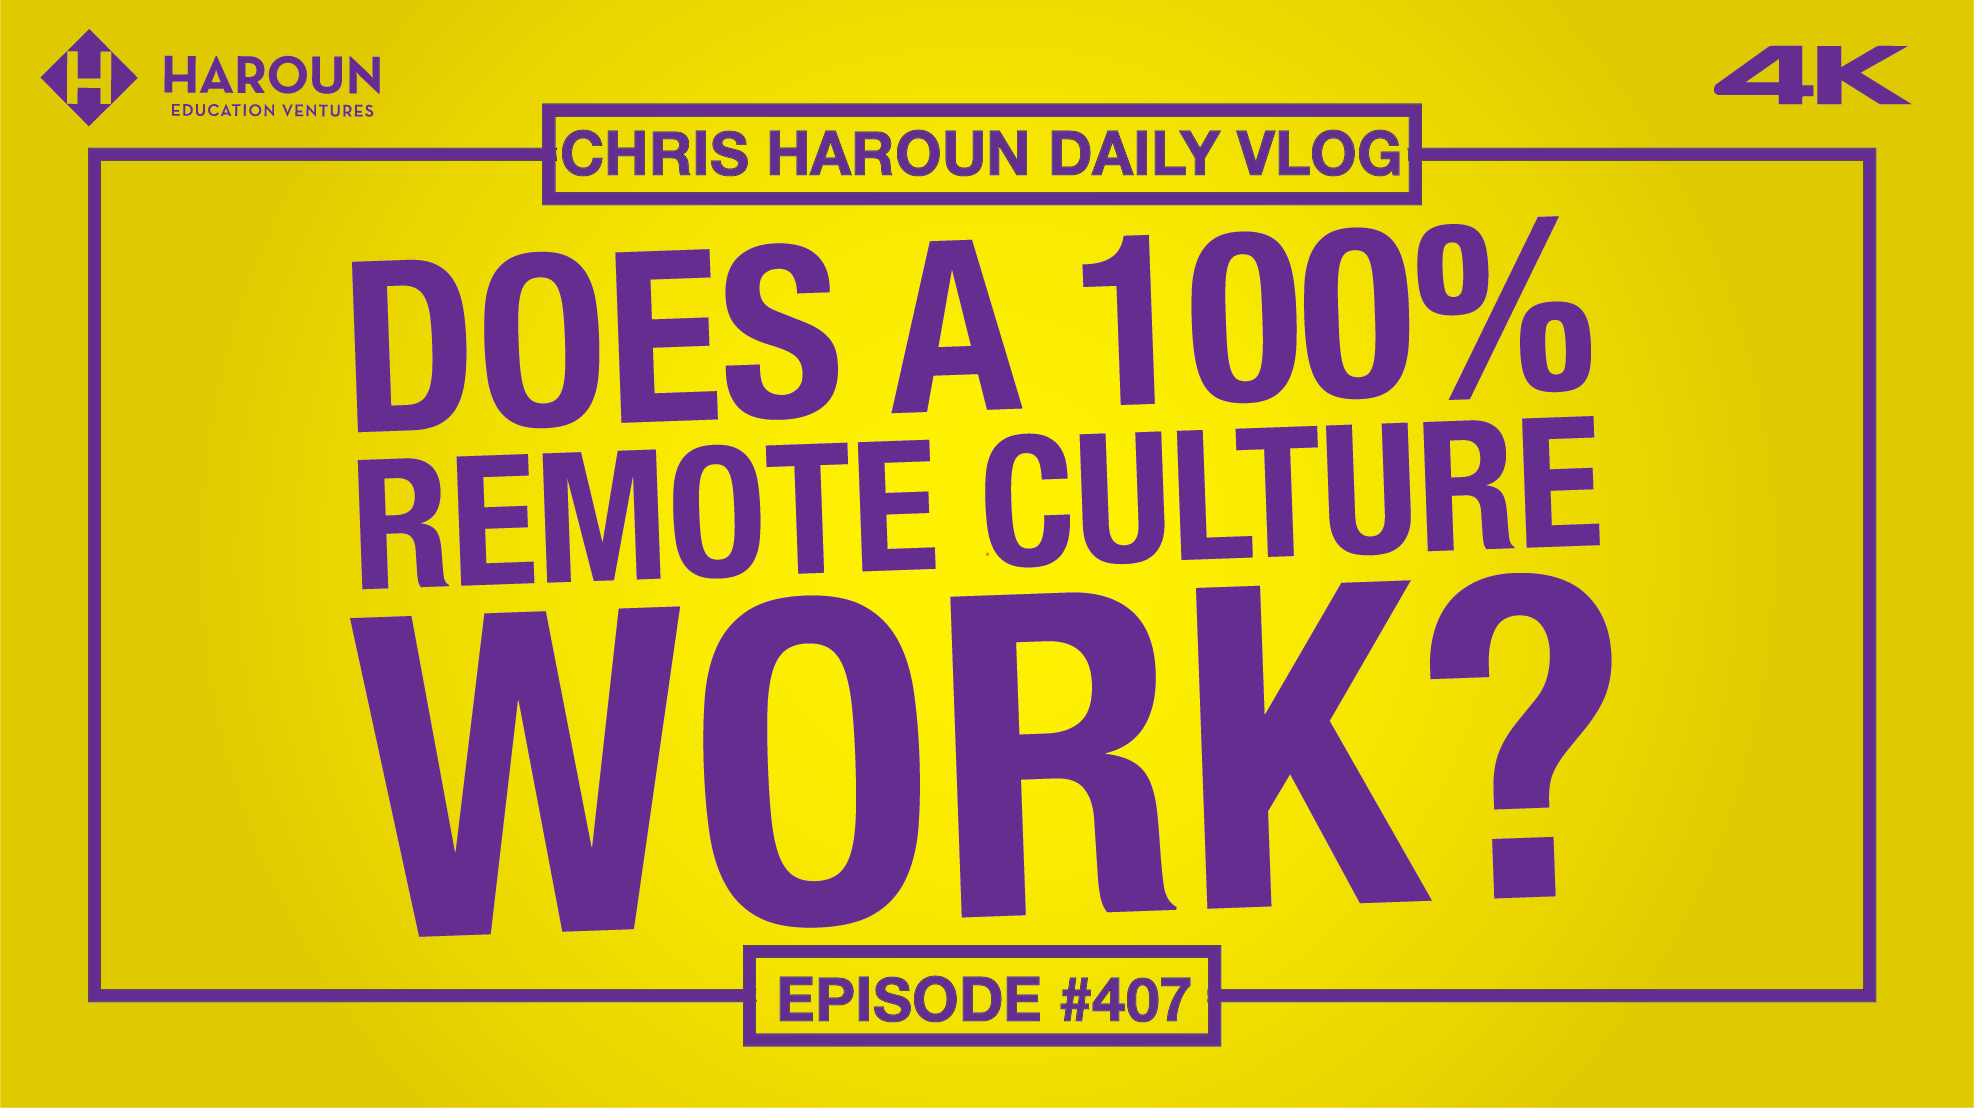 VLOG_407_9_11_2019_Does a 100% Remote Culture Work?.png